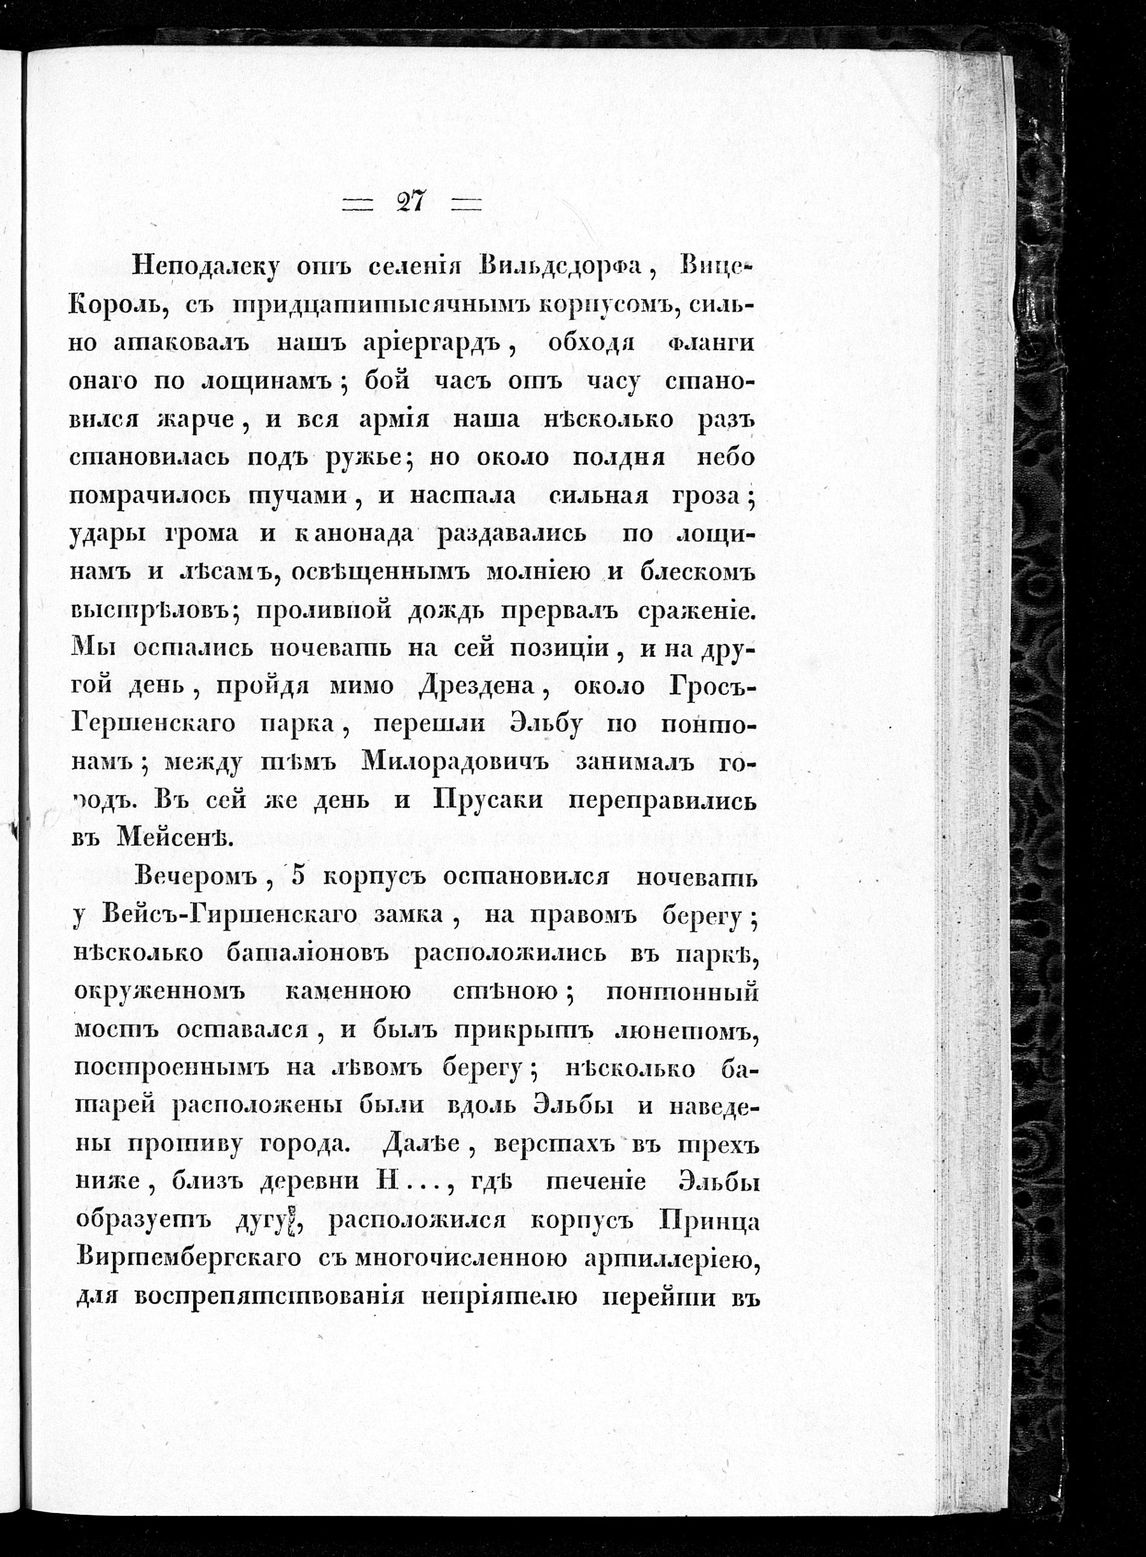 http://elib.shpl.ru/pages/1586454/zooms/7